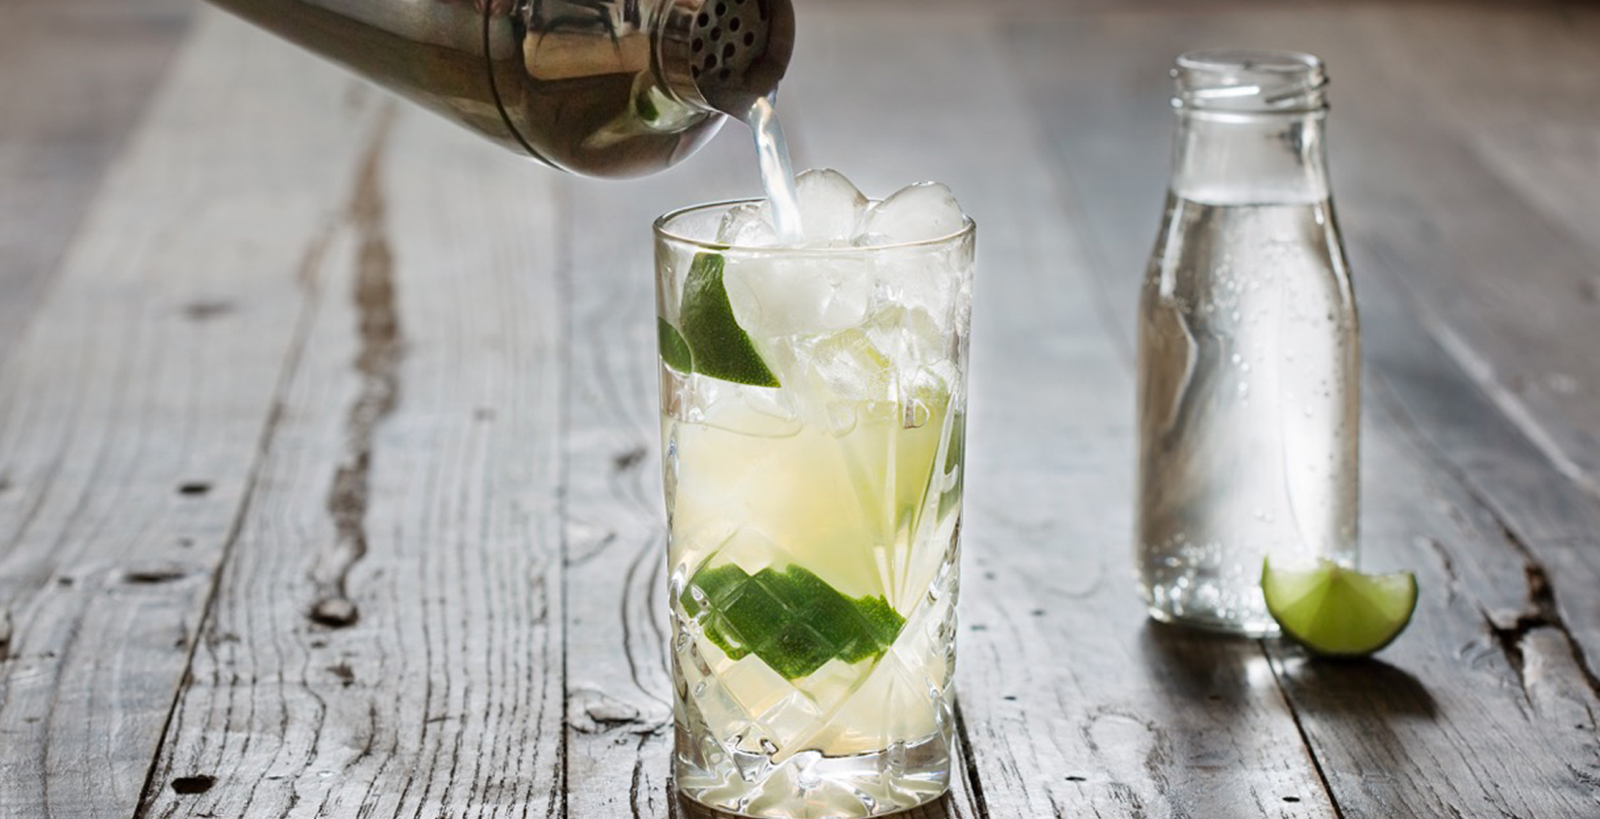 THE RICKEY COCKTAIL AND HOW TO MIX IT